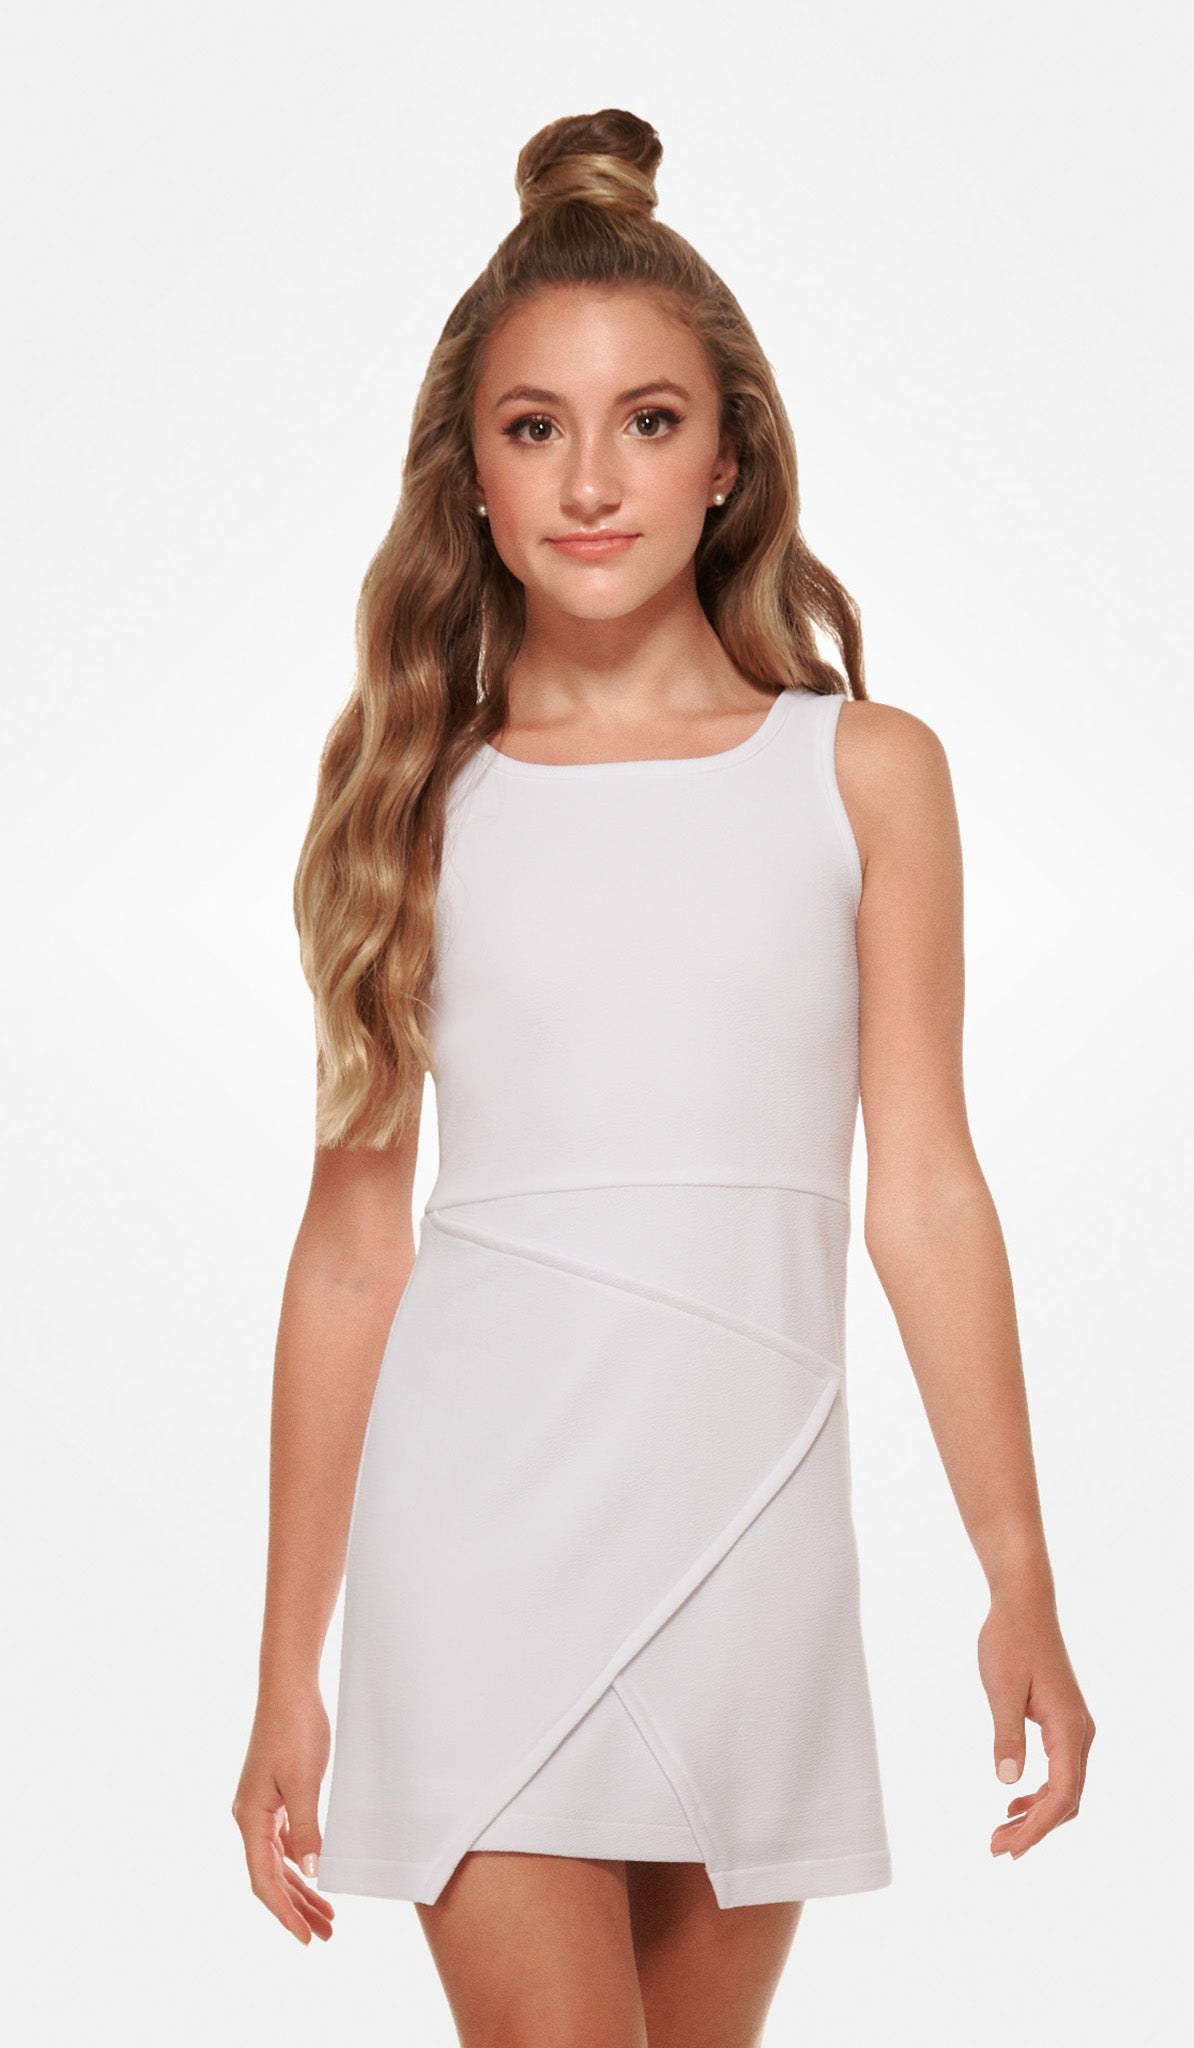 The Sally Miller Nicole Dress - white textured stretch knit envelope a-line dress